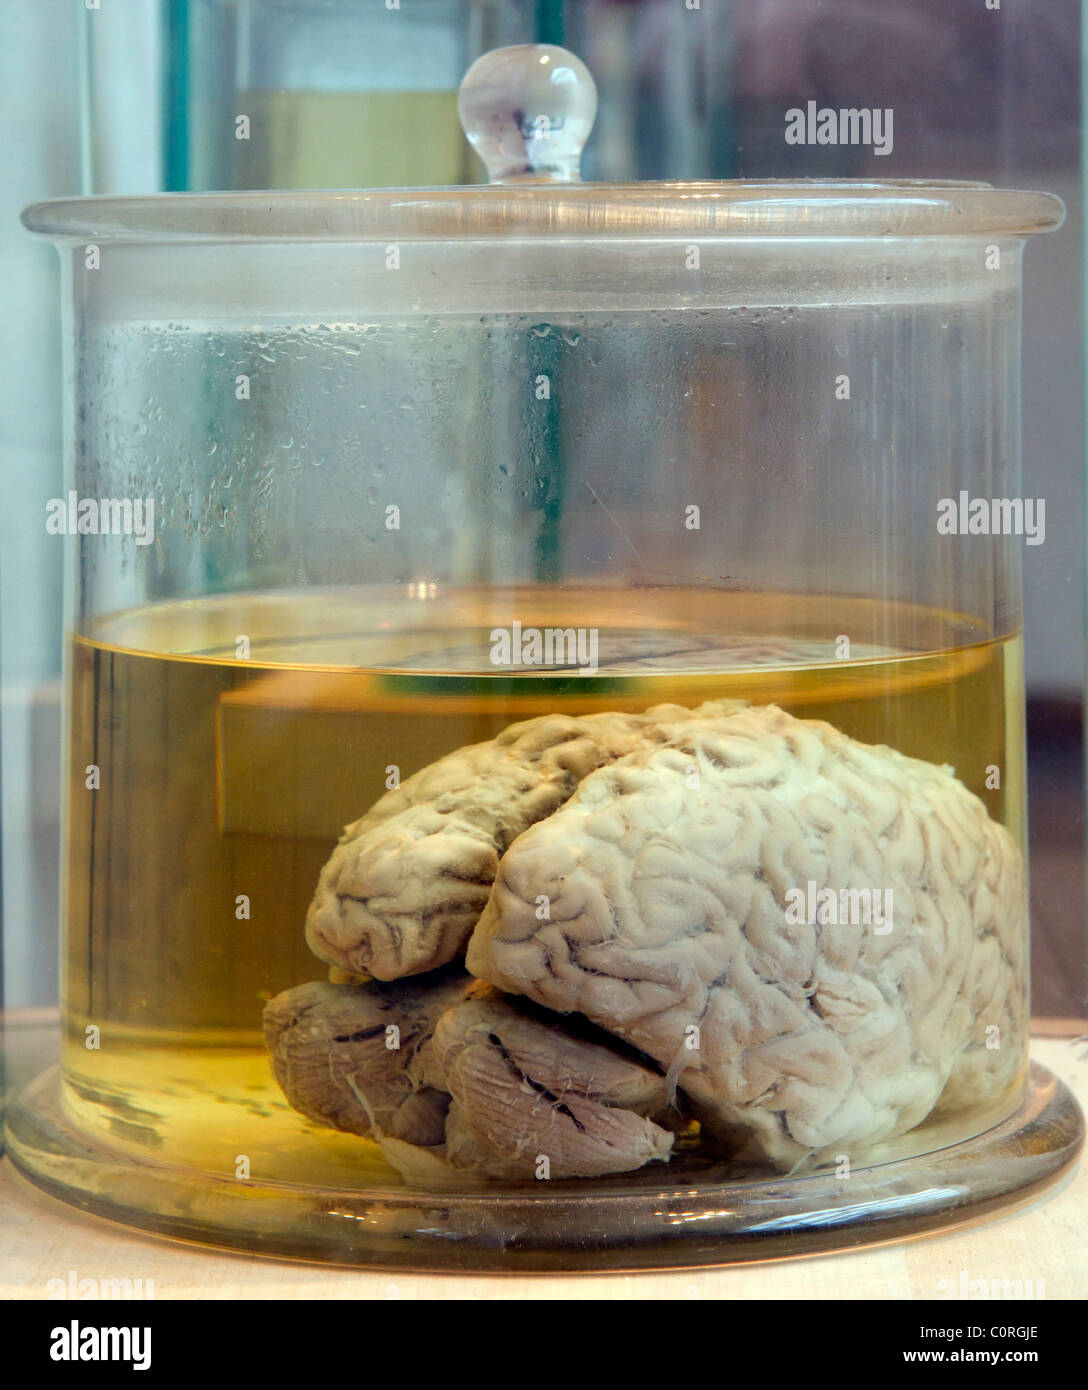 Real human brain in a glass jar - Stock Image